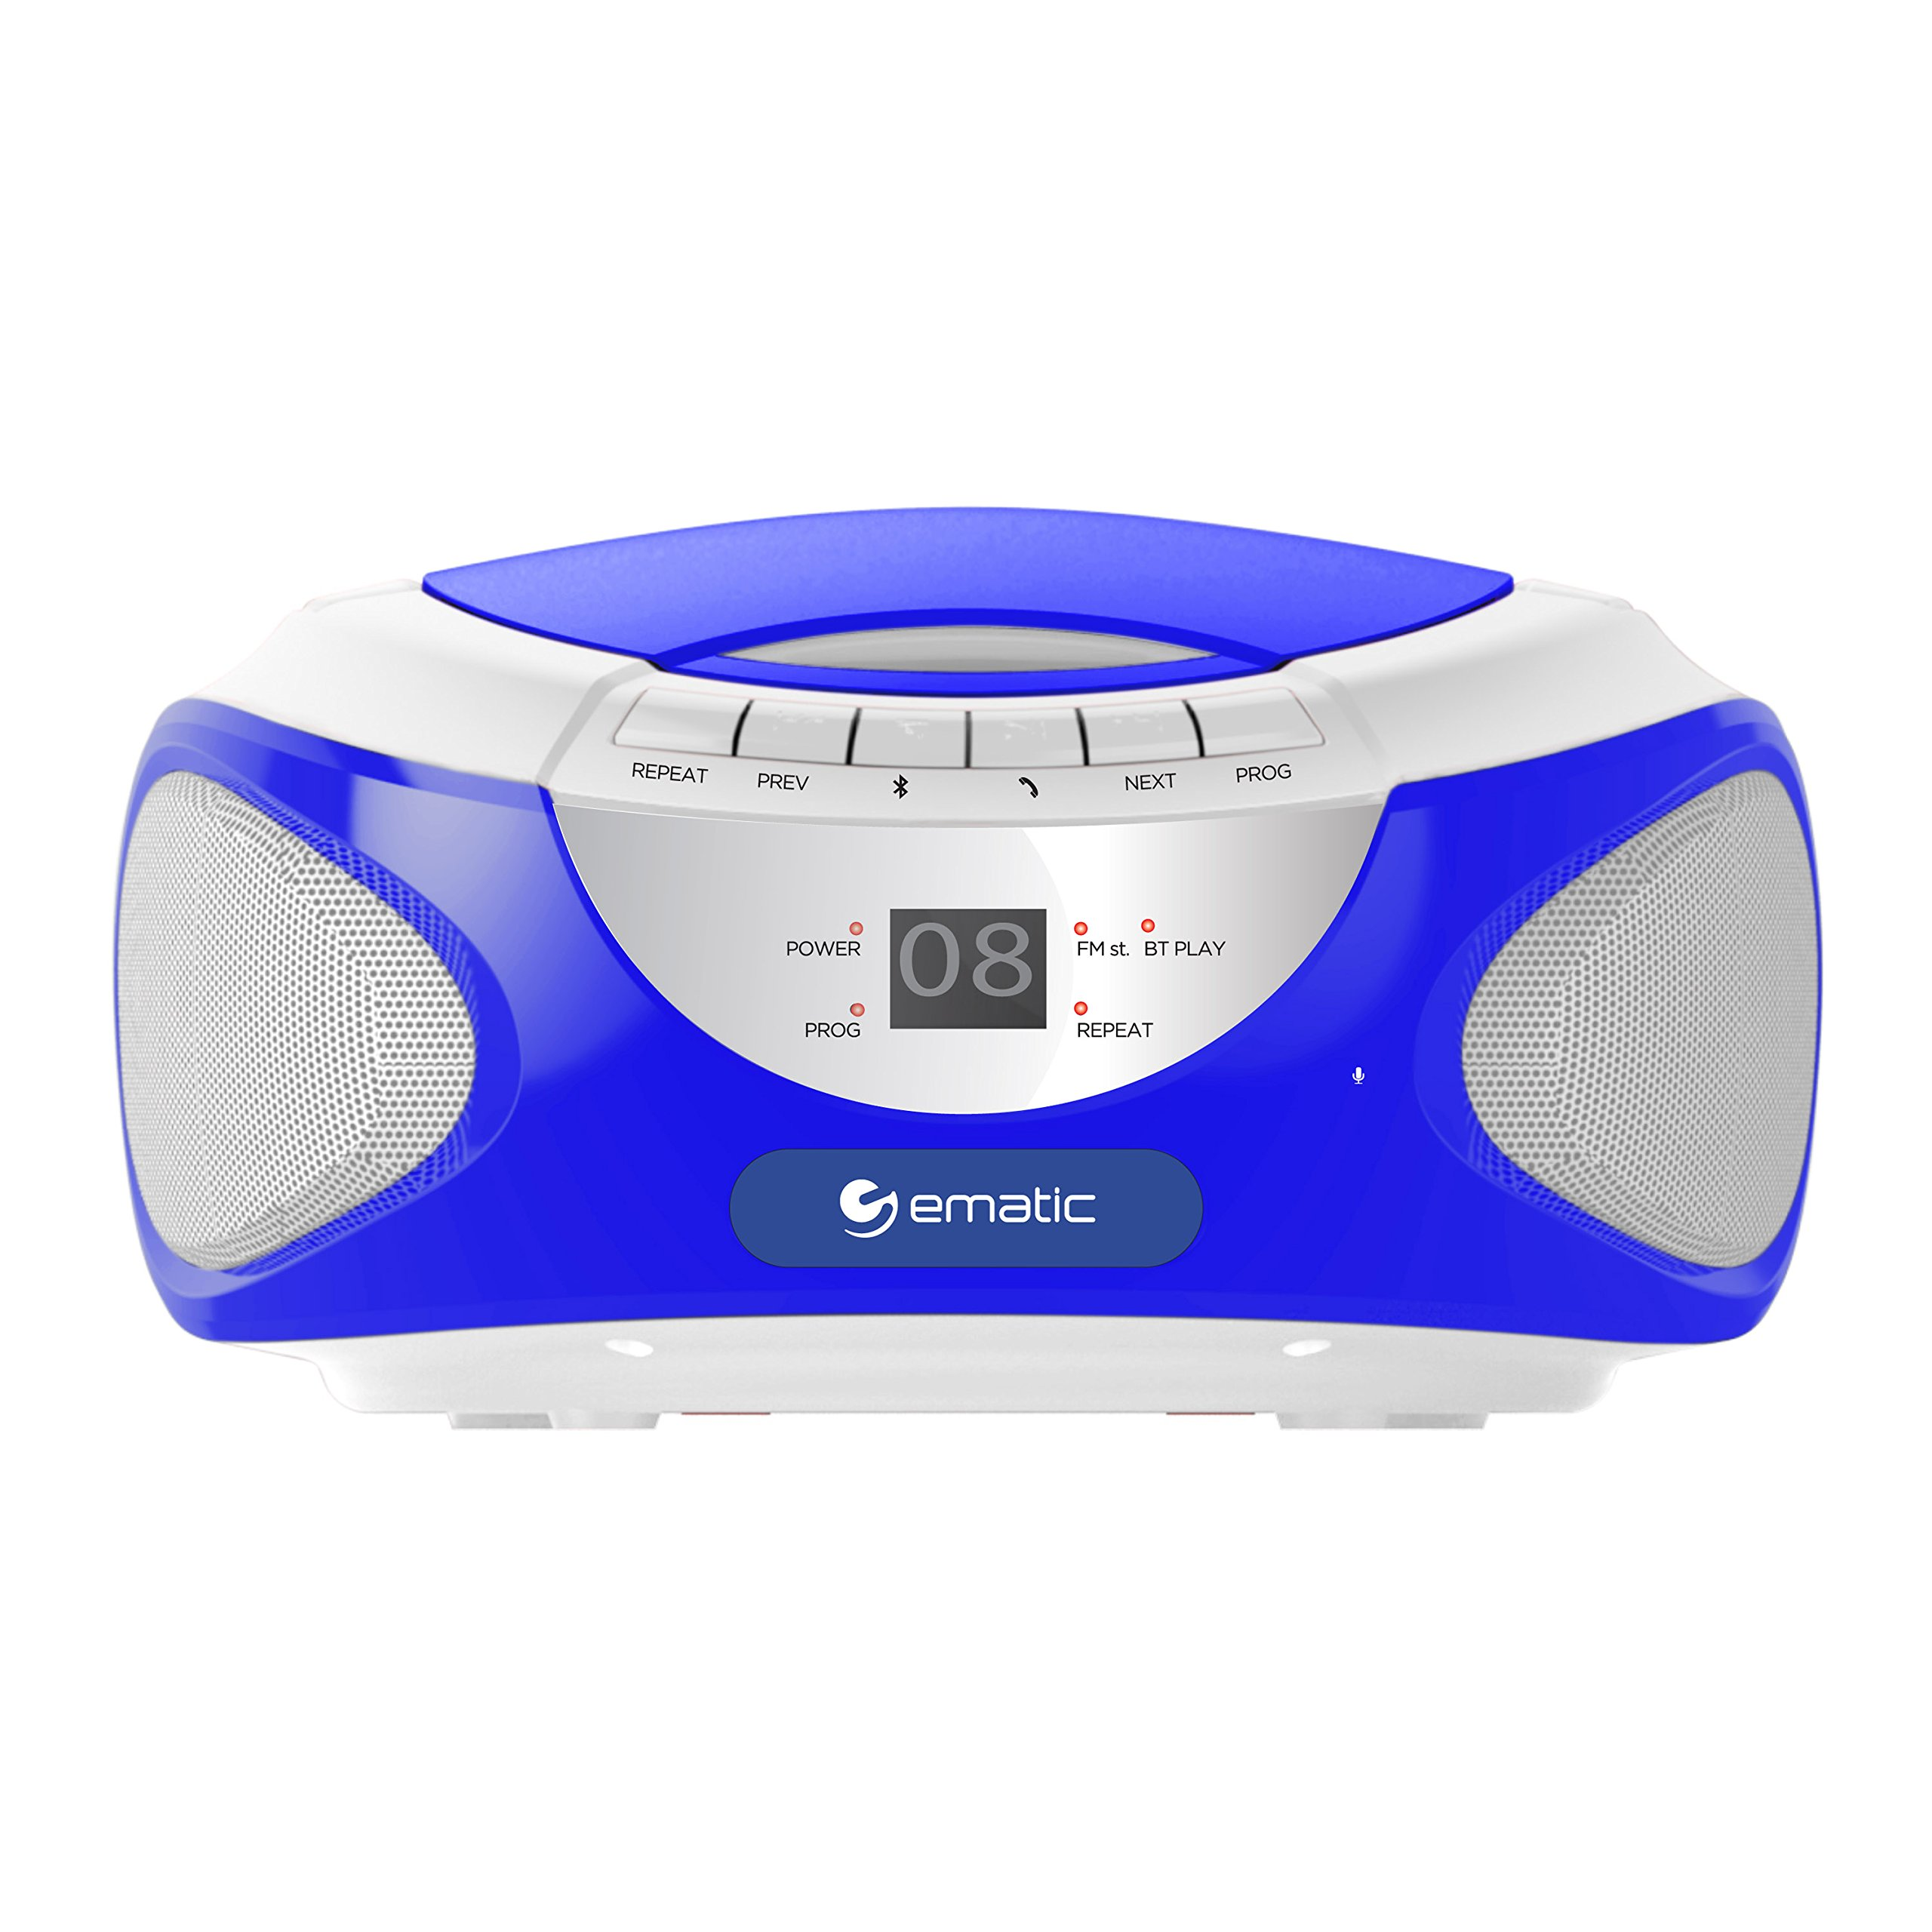 Ematic CD Boom Box with Bluetooth Audio and Speakerphone, Blue